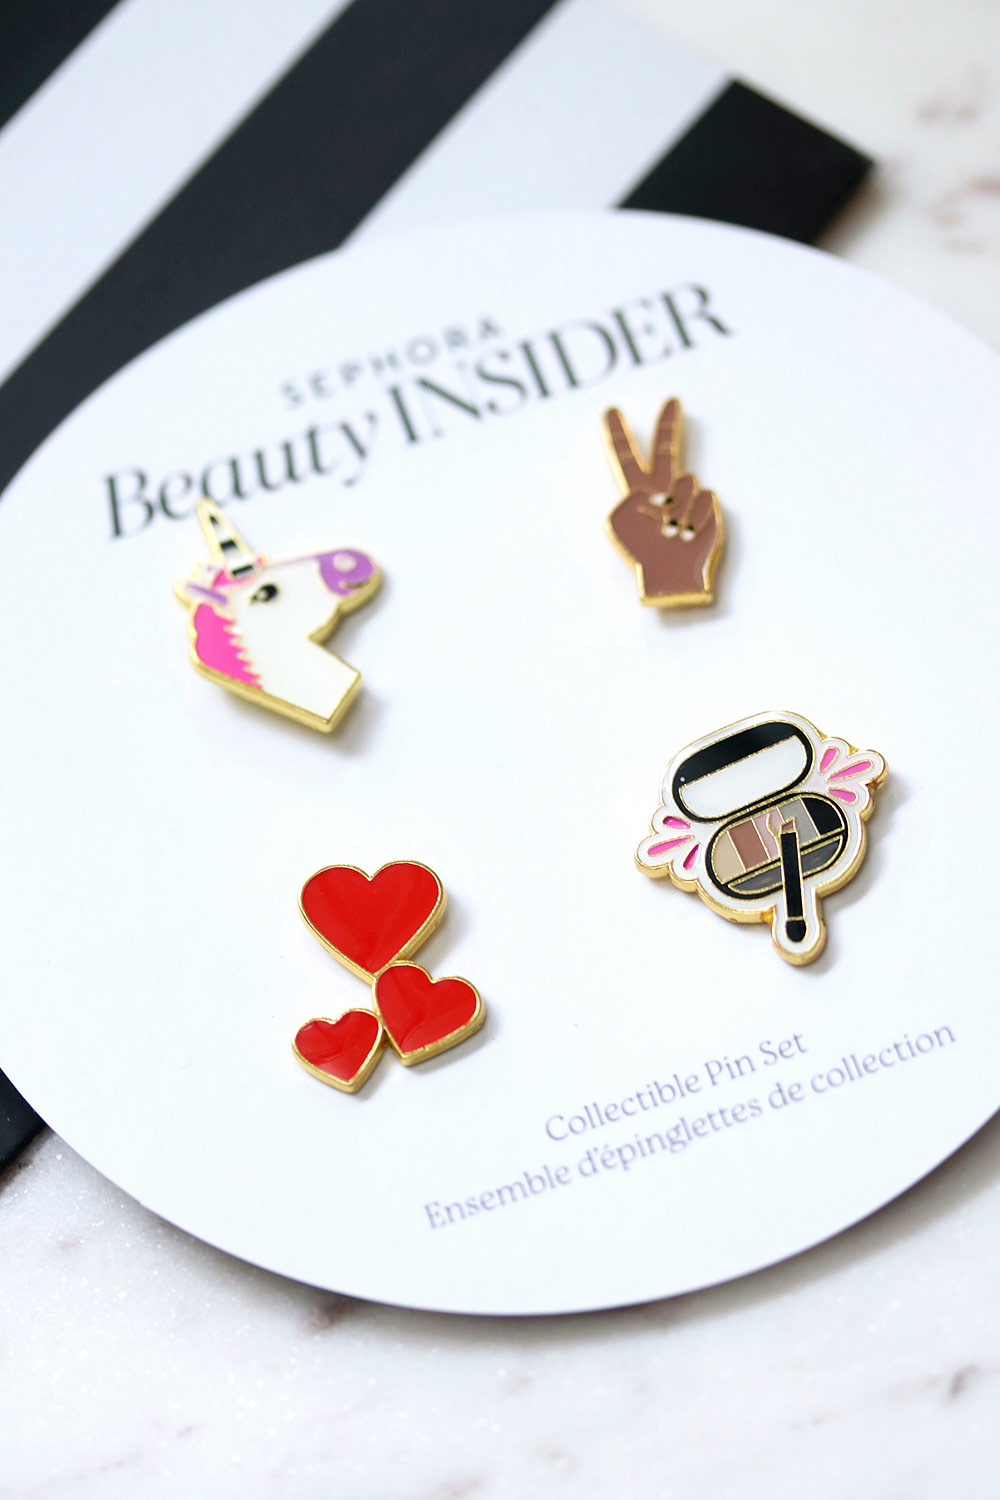 sephora beauty insider collectible pin set